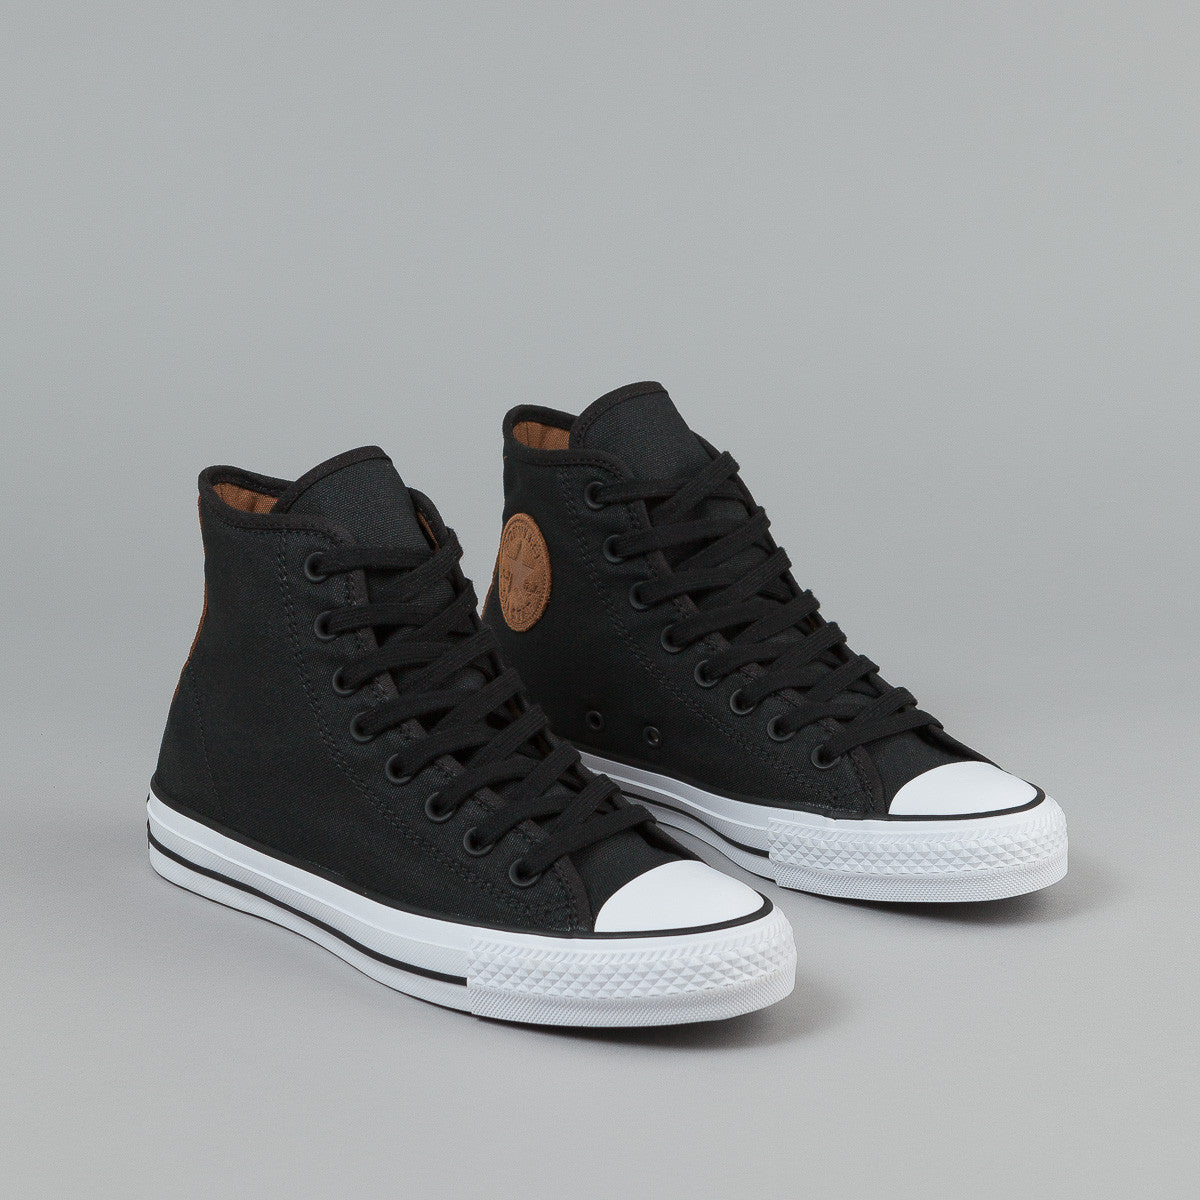 Navy Converse Shoes For Women